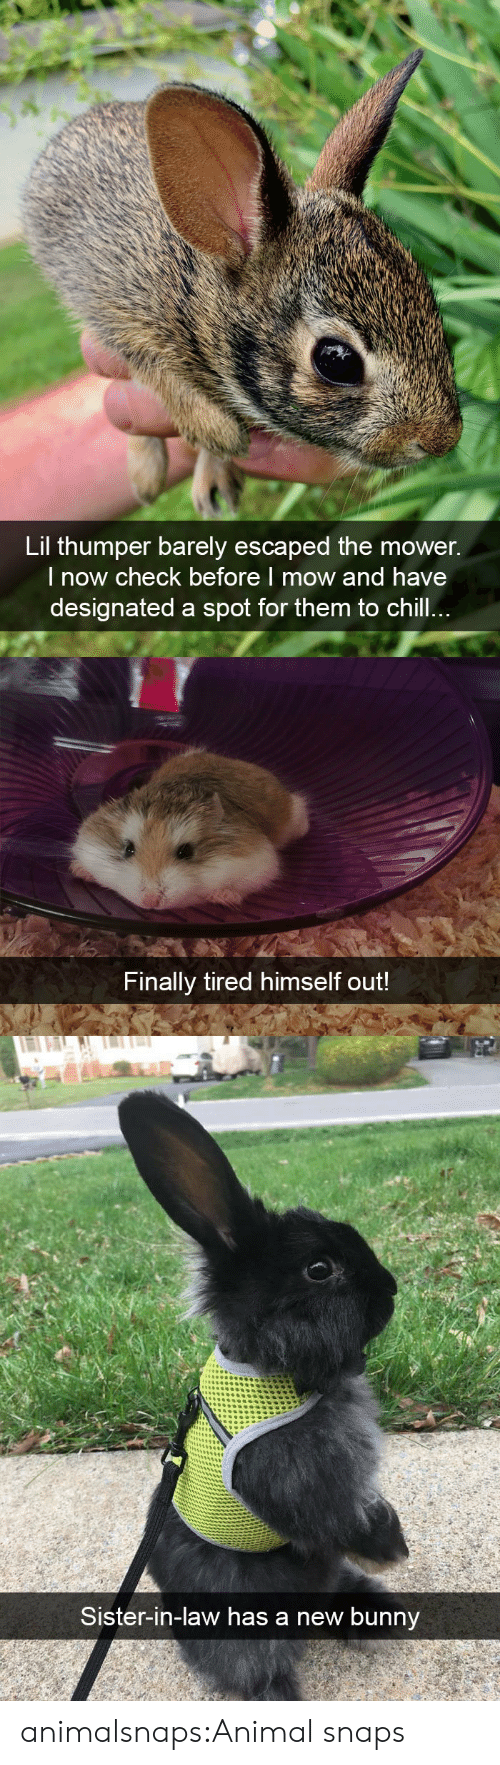 Chill, Target, and Tumblr: Lil thumper barely escaped the mower.  l now check before I mow and have  designated a spot for them to chill   Finally tired himself out!   Sister-in-law has a new bunnv animalsnaps:Animal snaps